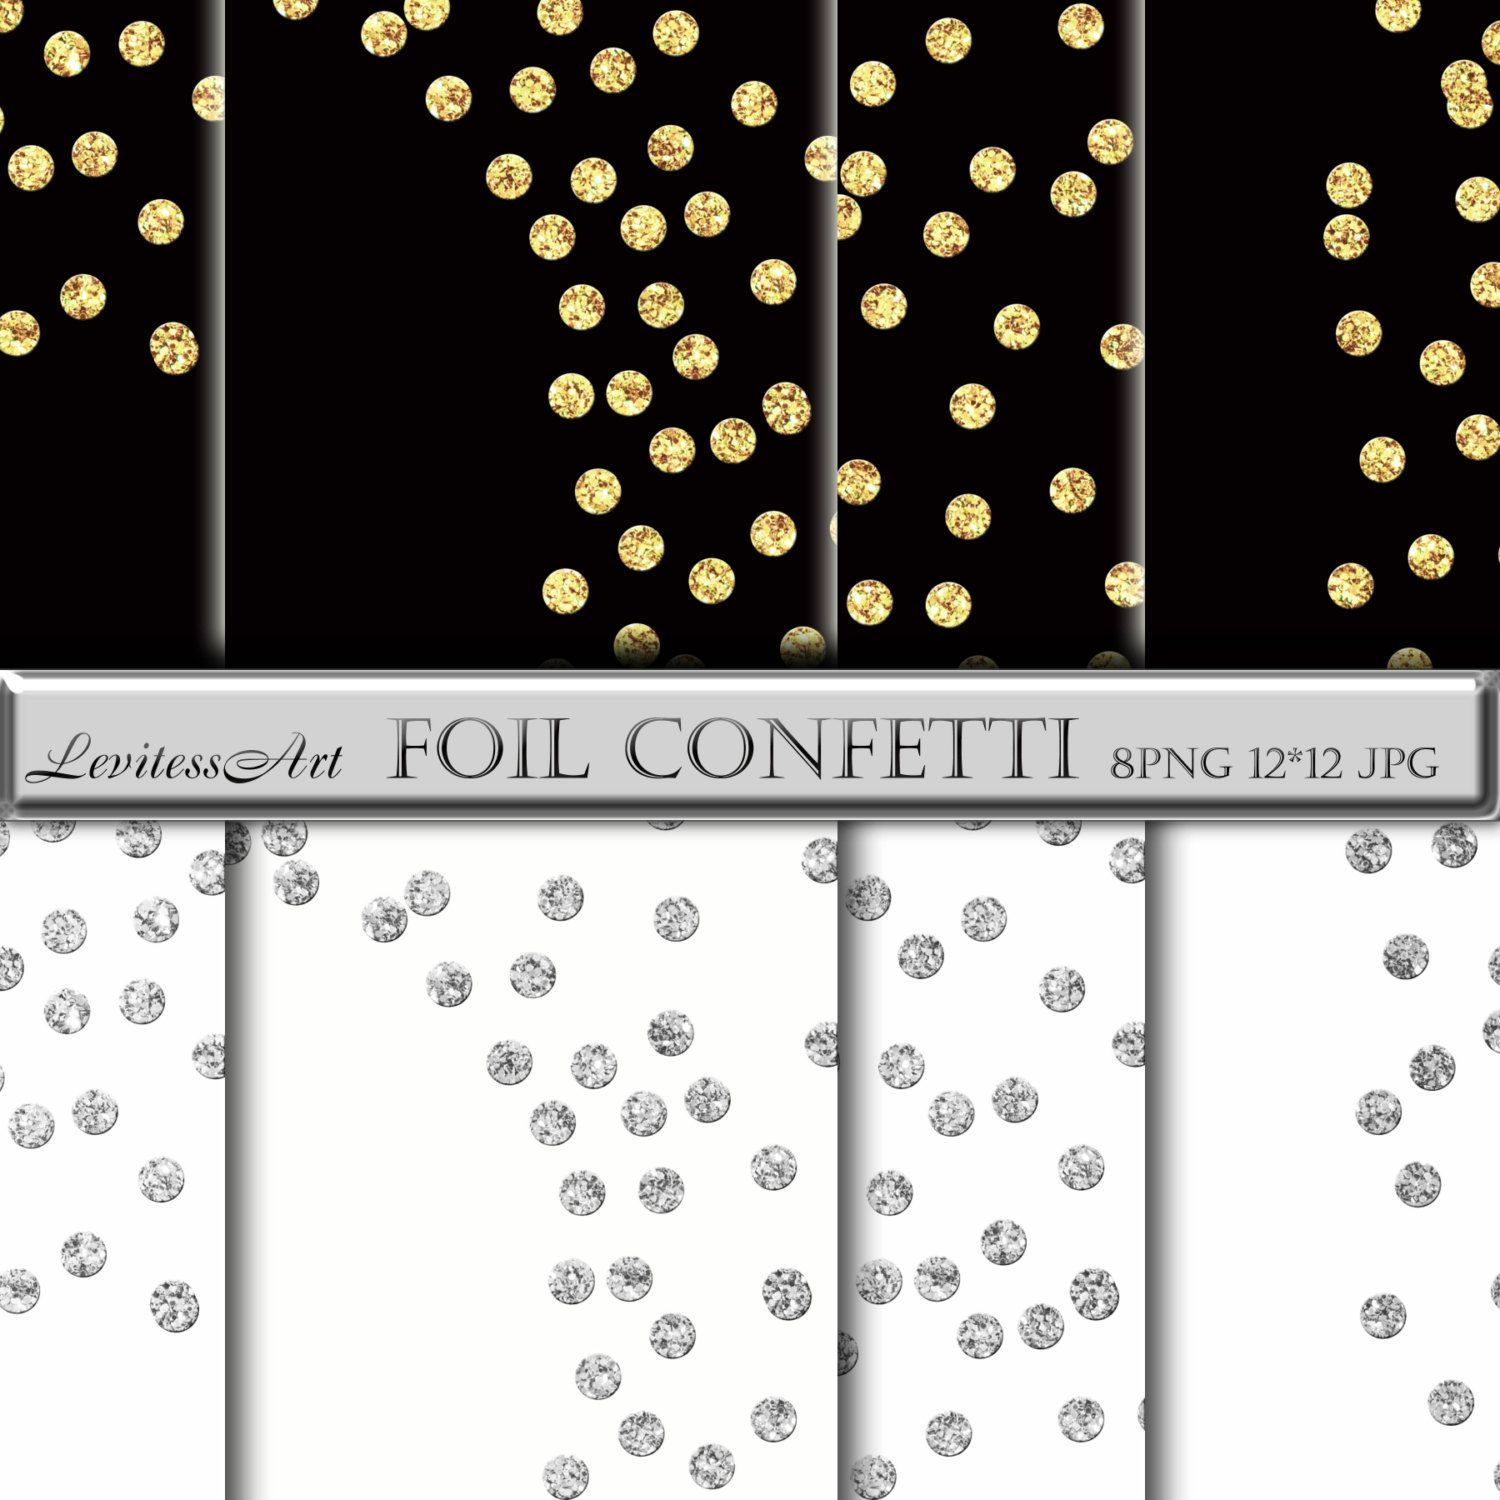 Gold foil confetti clipart banner royalty free download Gold confetti overlay Gold confetti clipart Glitter confetti borders ... banner royalty free download